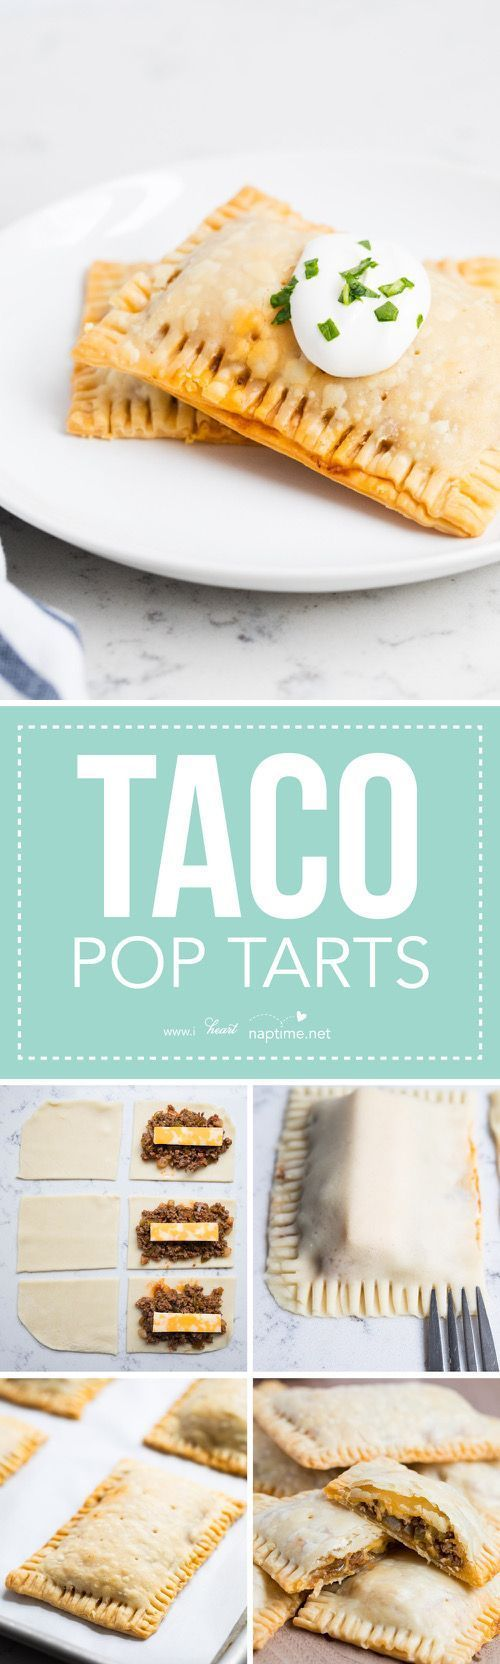 Taco Pop Tarts …AKA mini taco pies are one of my families favorite! The flaky crust, seasoned taco meat, colby-jack cheese and fresh salsa give these such amazing flavor! (Cheese Enchiladas For Kids)